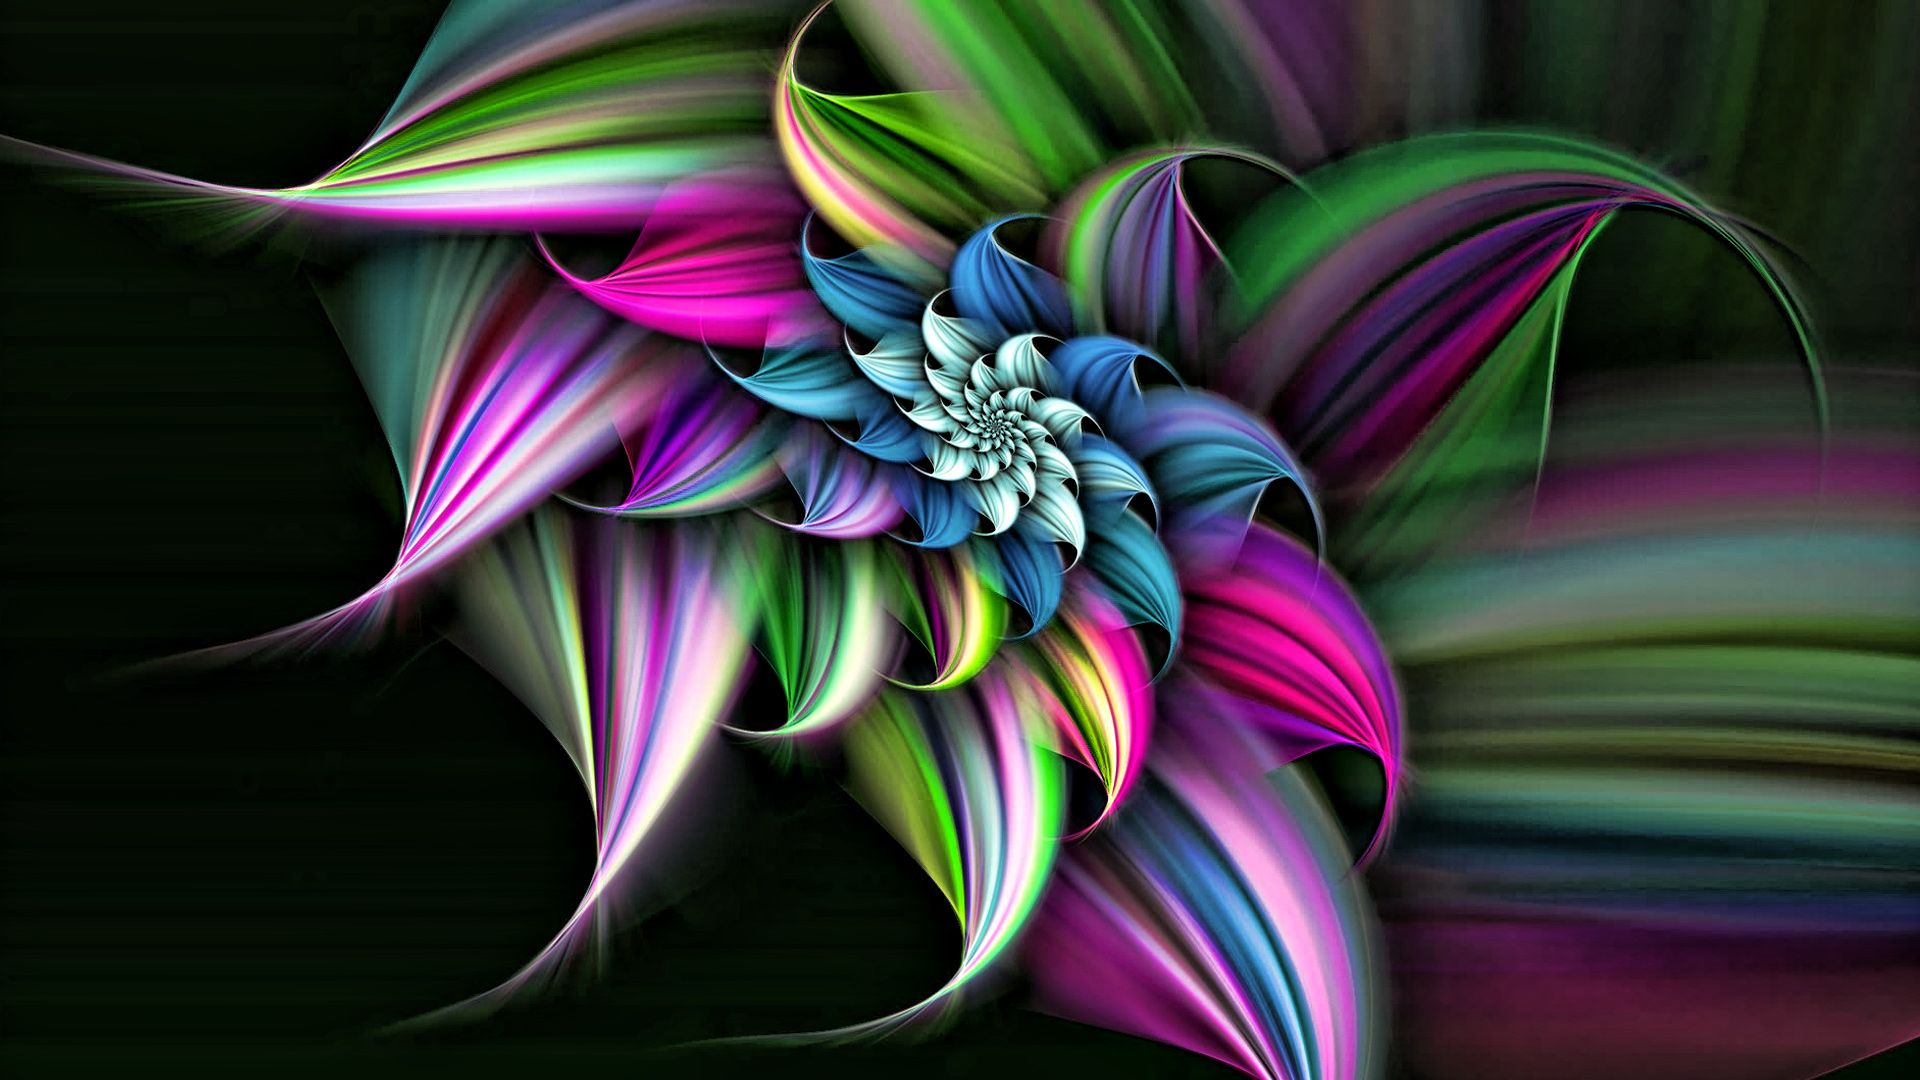 3d images rainbow flower wallpapers free download wallpaper 3d images rainbow flower wallpapers free download wallpaper thecheapjerseys Choice Image